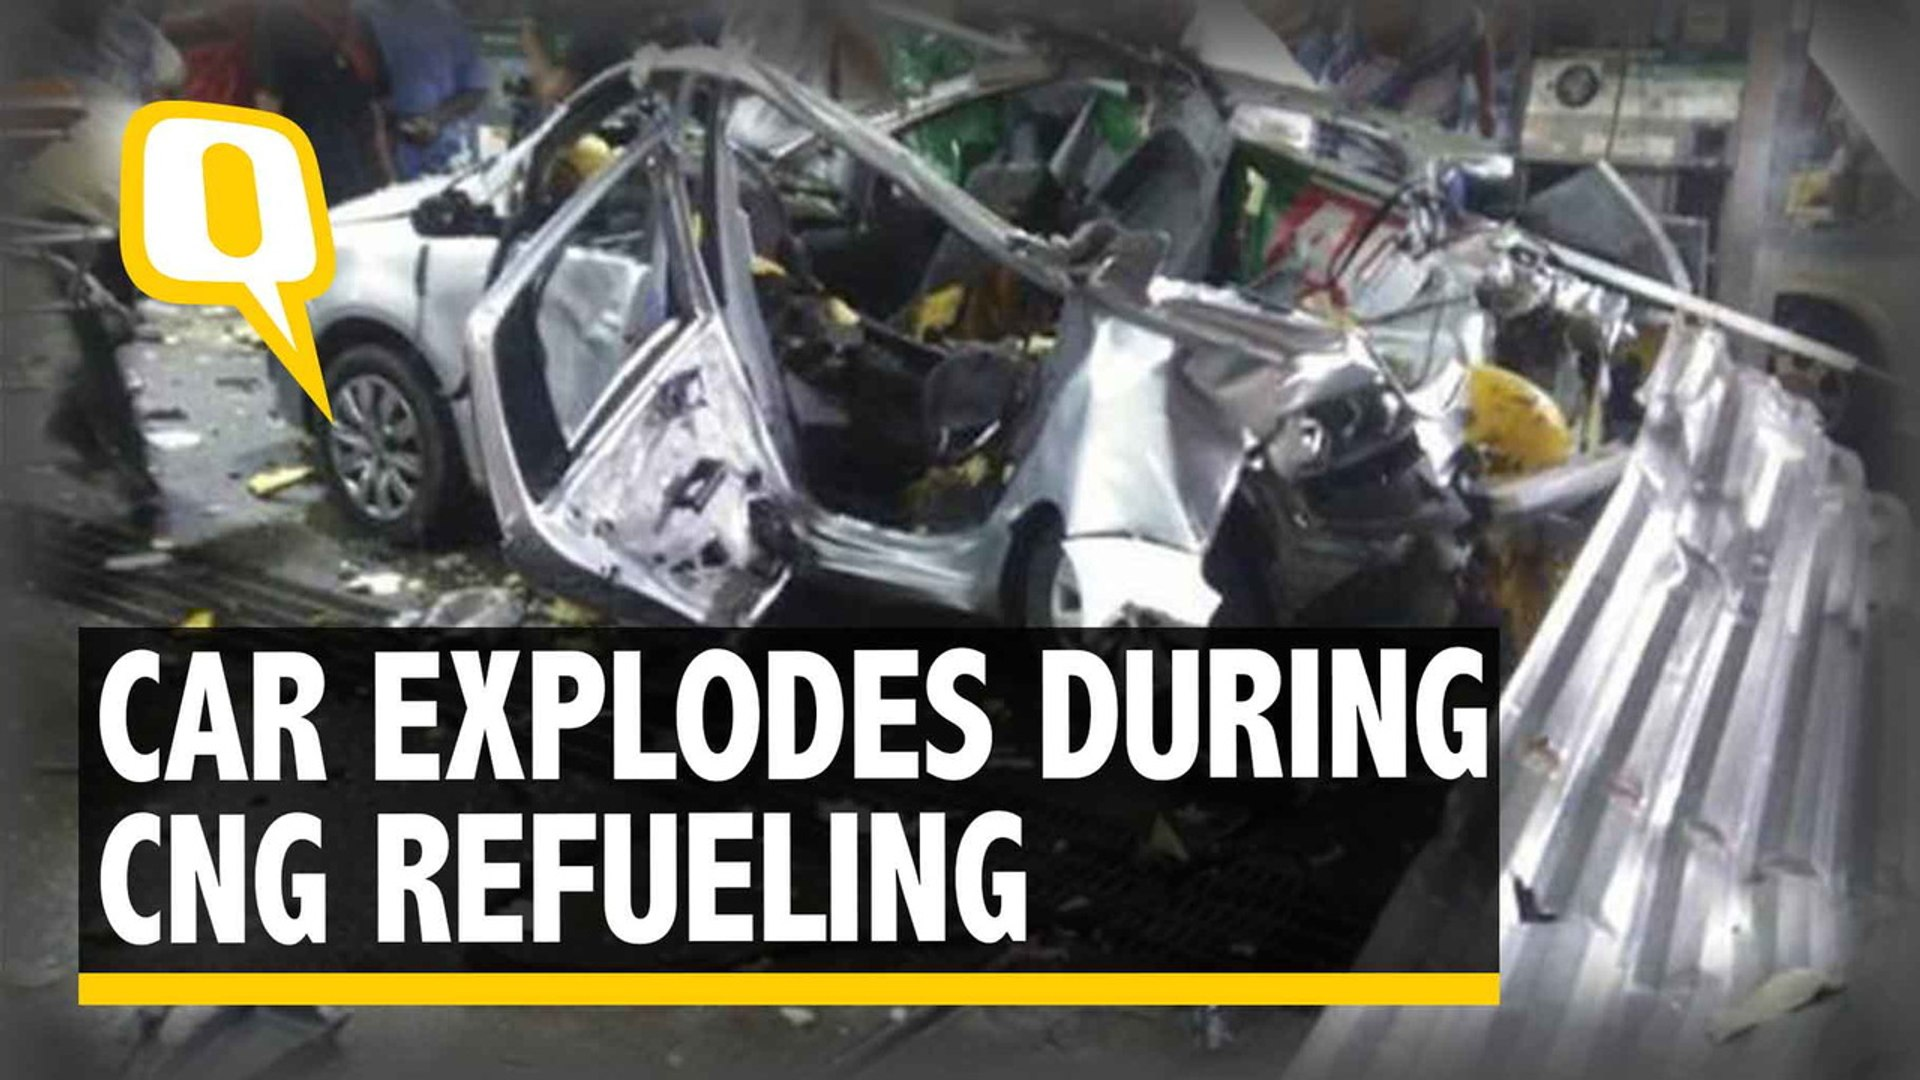 Car Explodes at CNG Station During Refueling, 1 Killed, 3 Injured